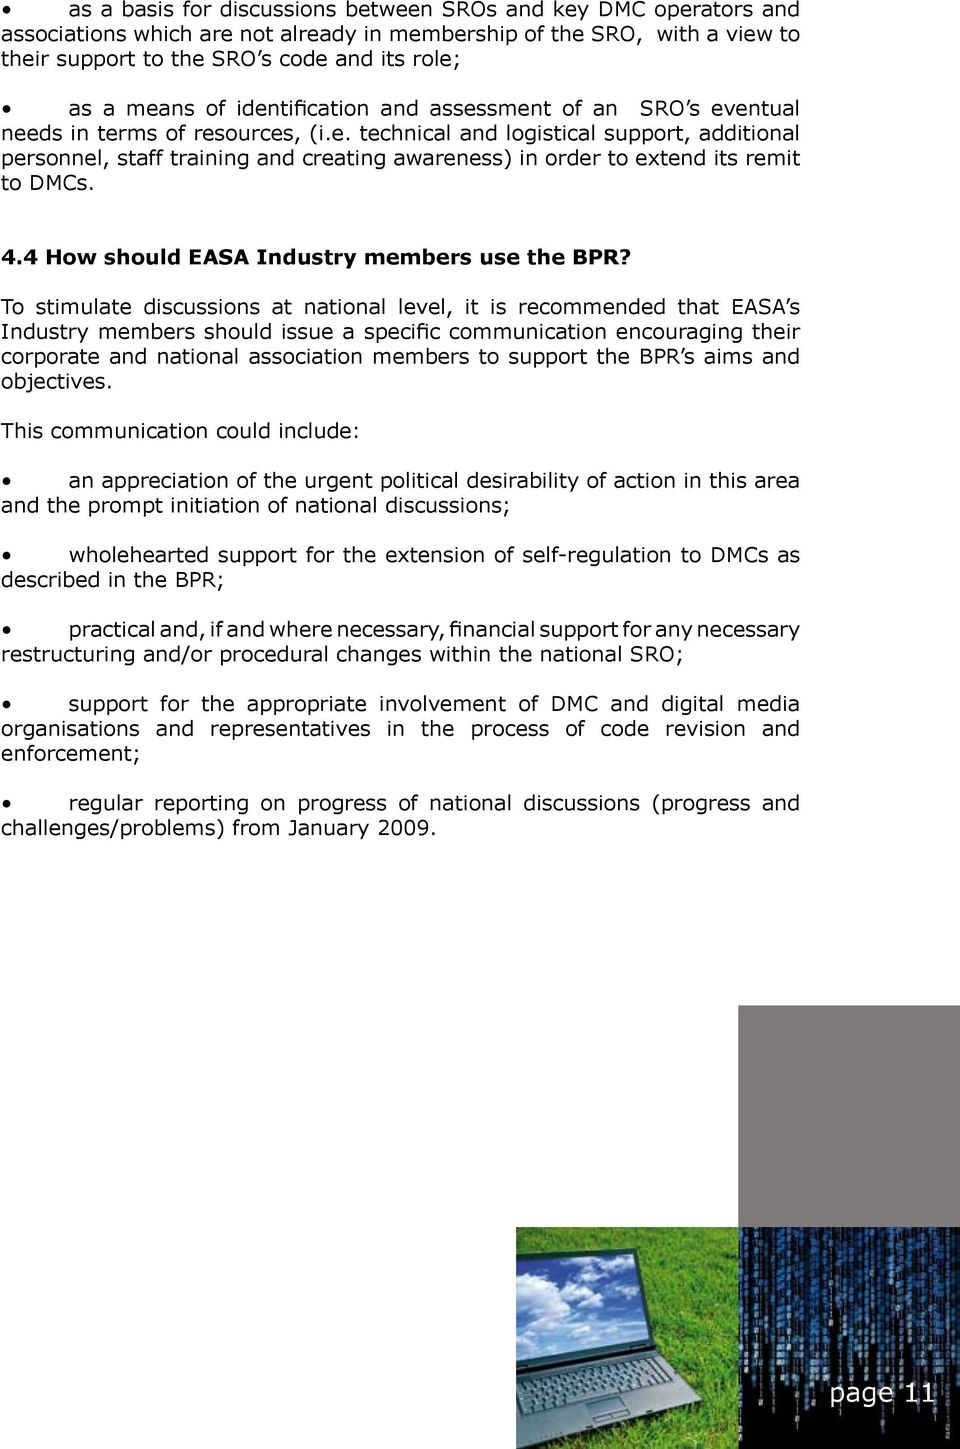 4.4 How should EASA Industry members use the BPR?